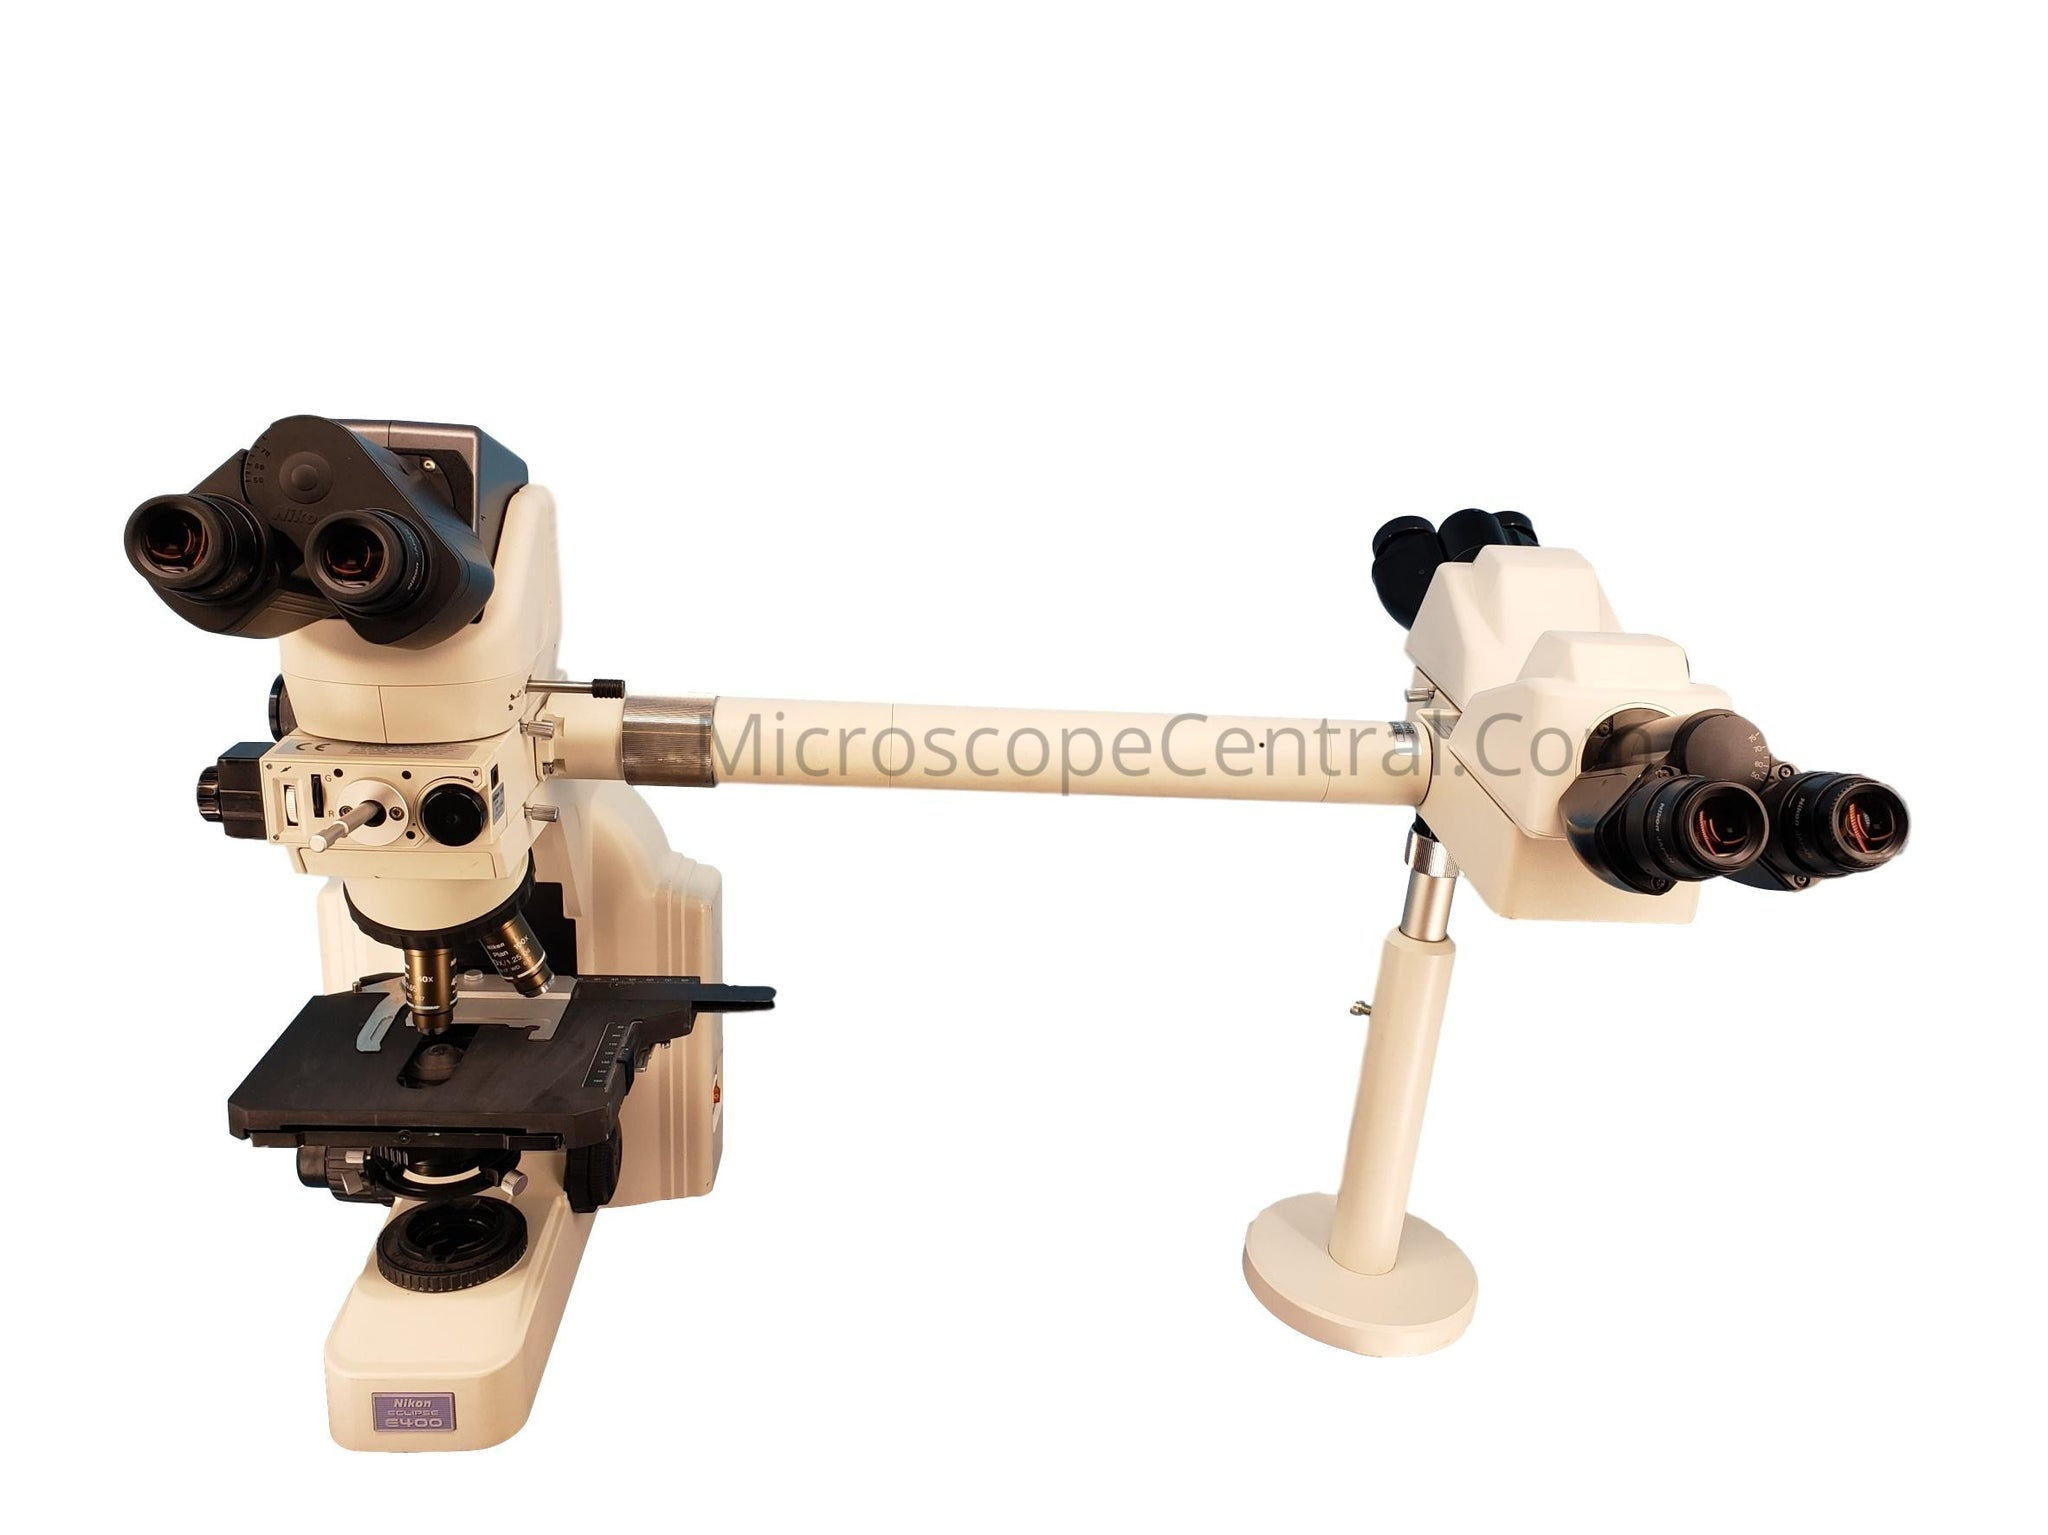 Nikon E400 3 Head Pathology Teaching Discussion Microscope